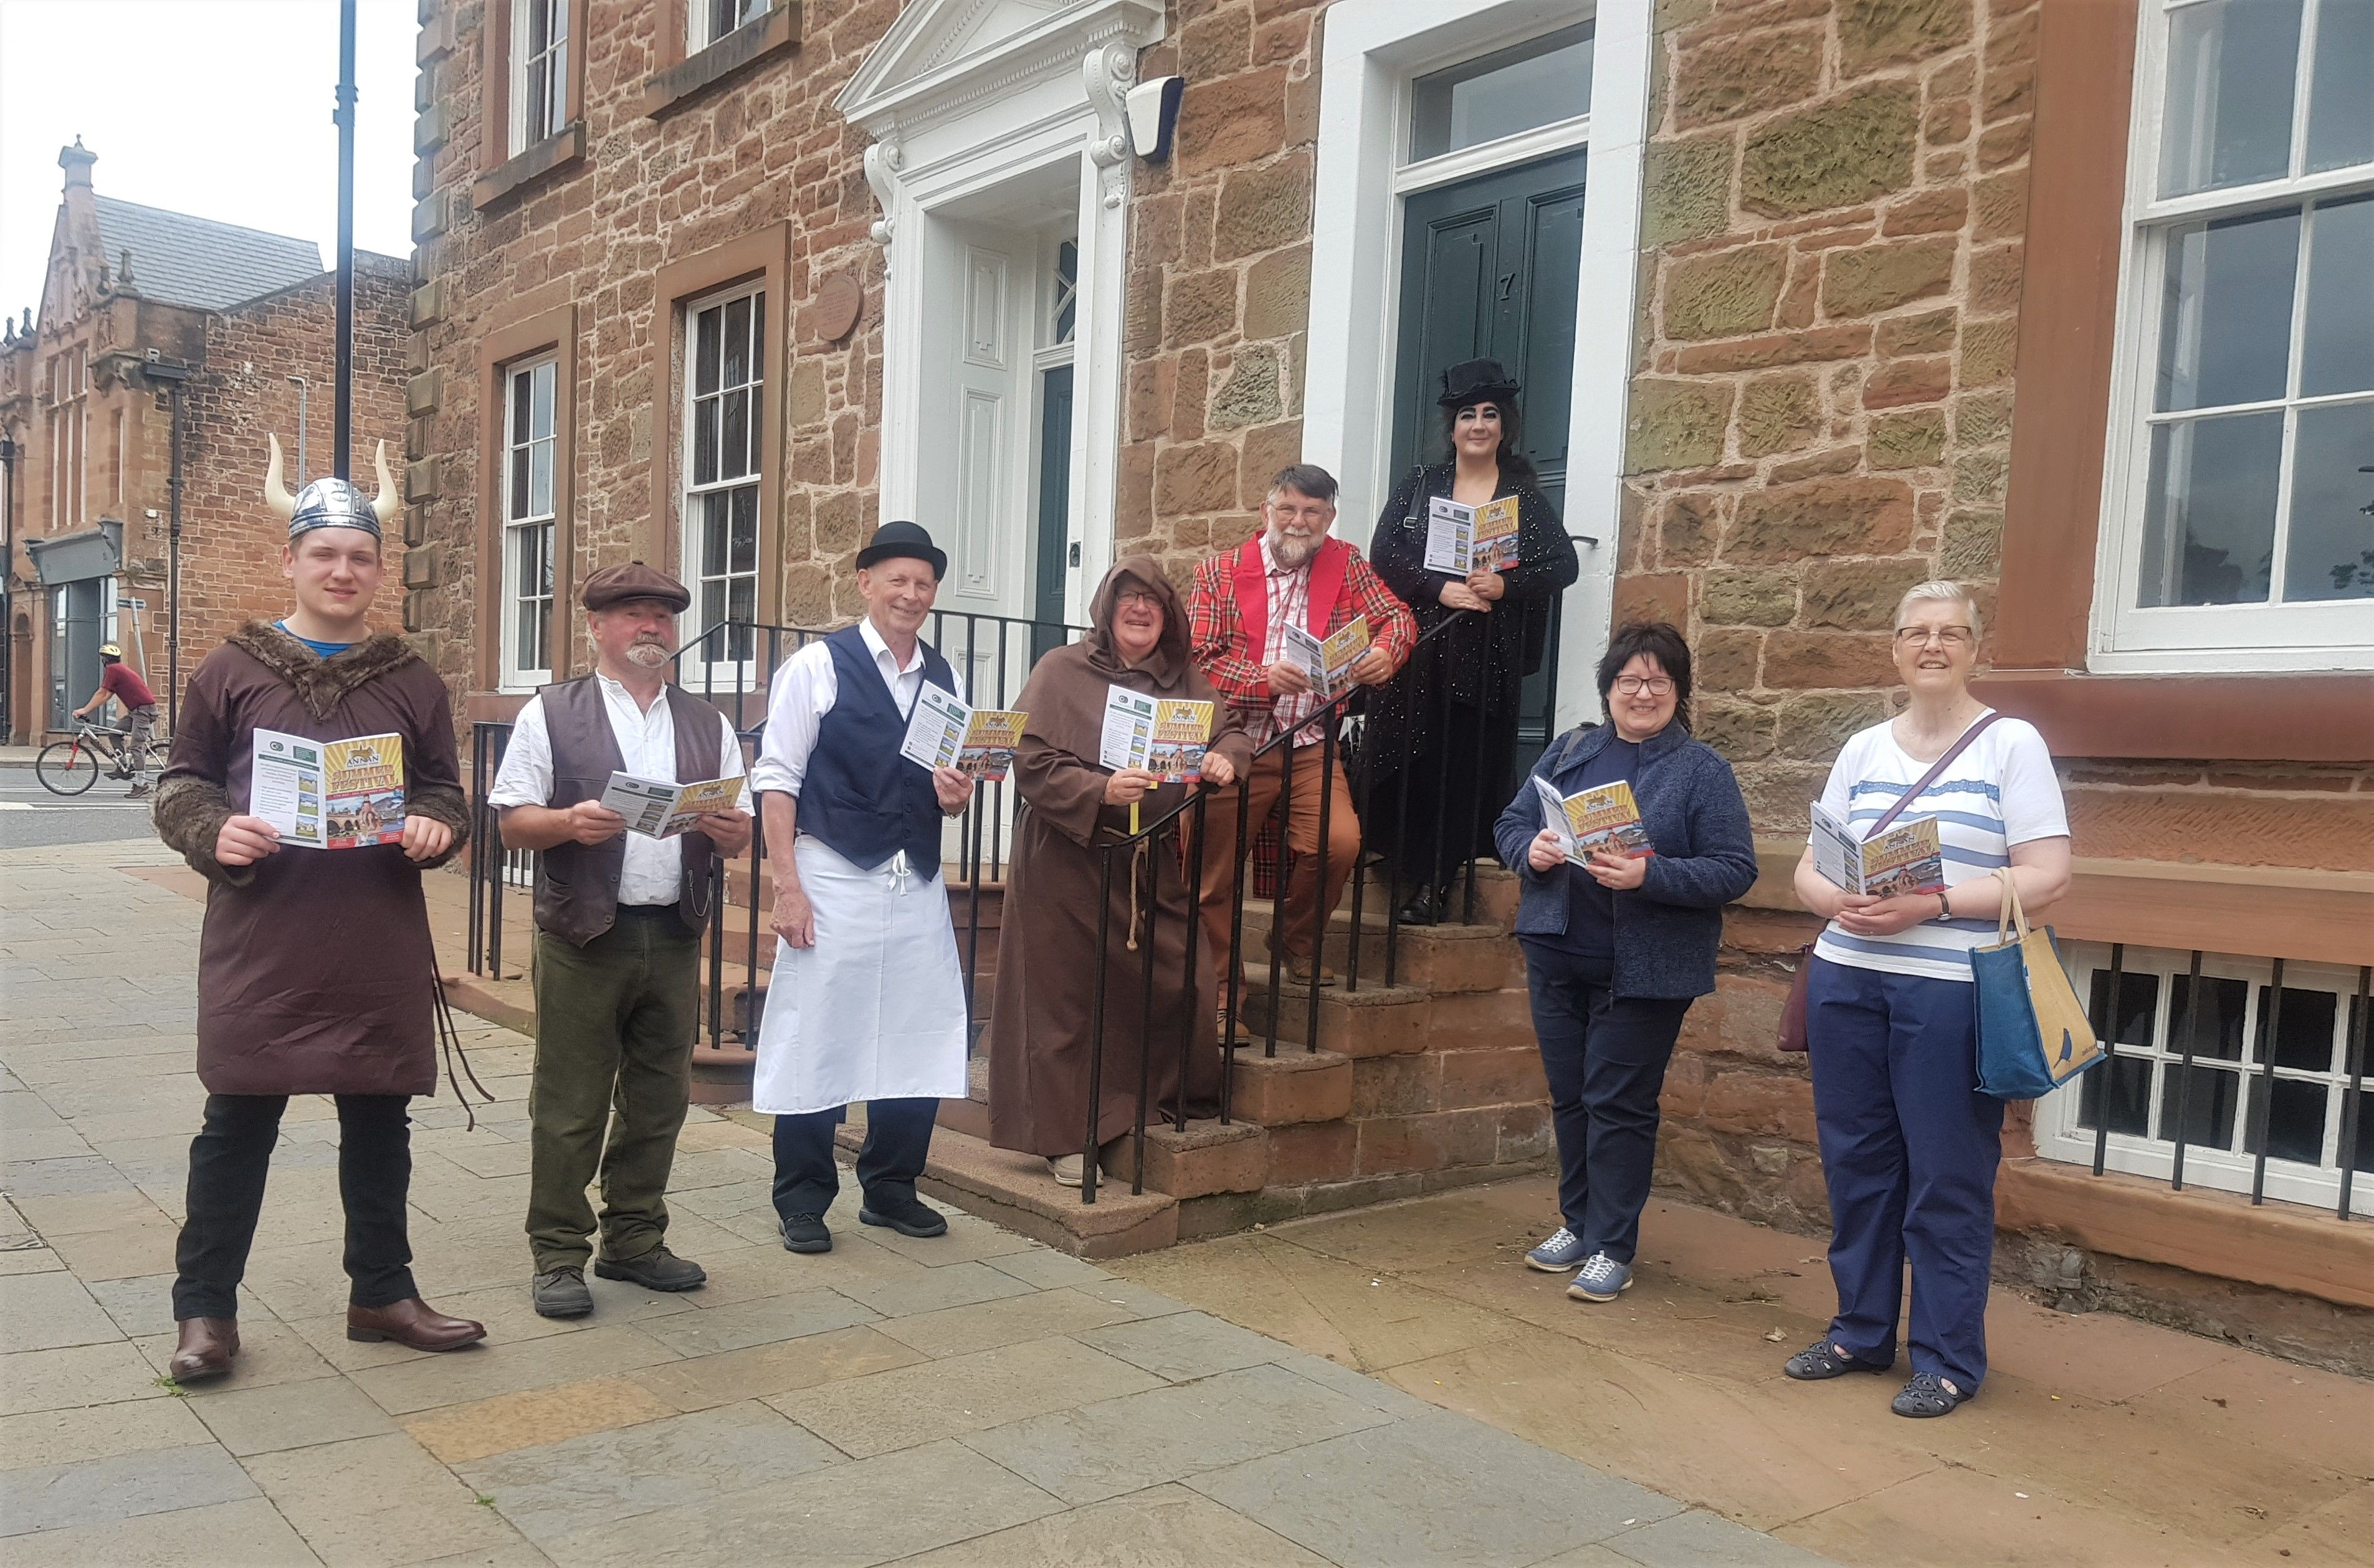 Members of the History Town Committee